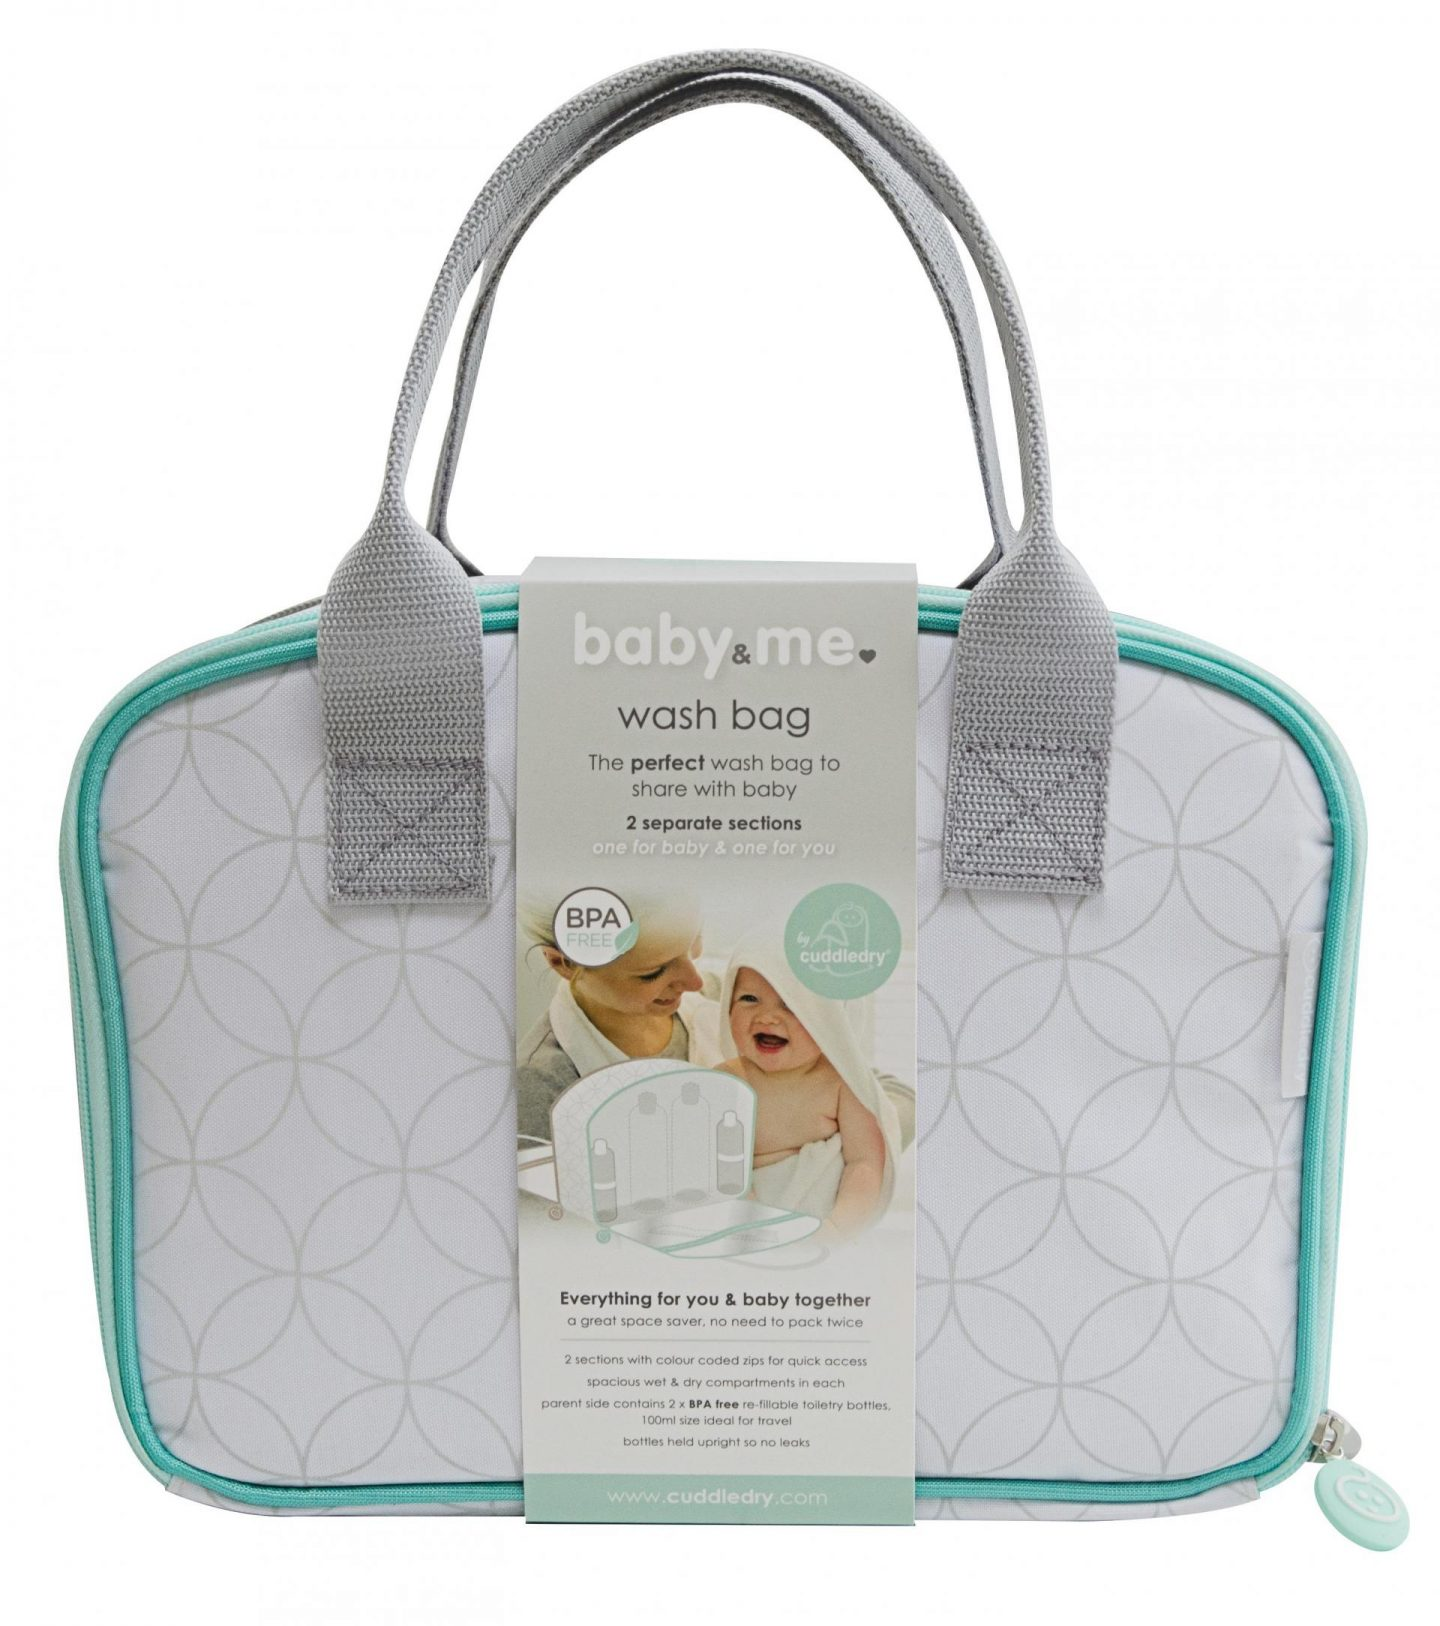 Giveaway | Win a Cuddledry Baby&Me washbag